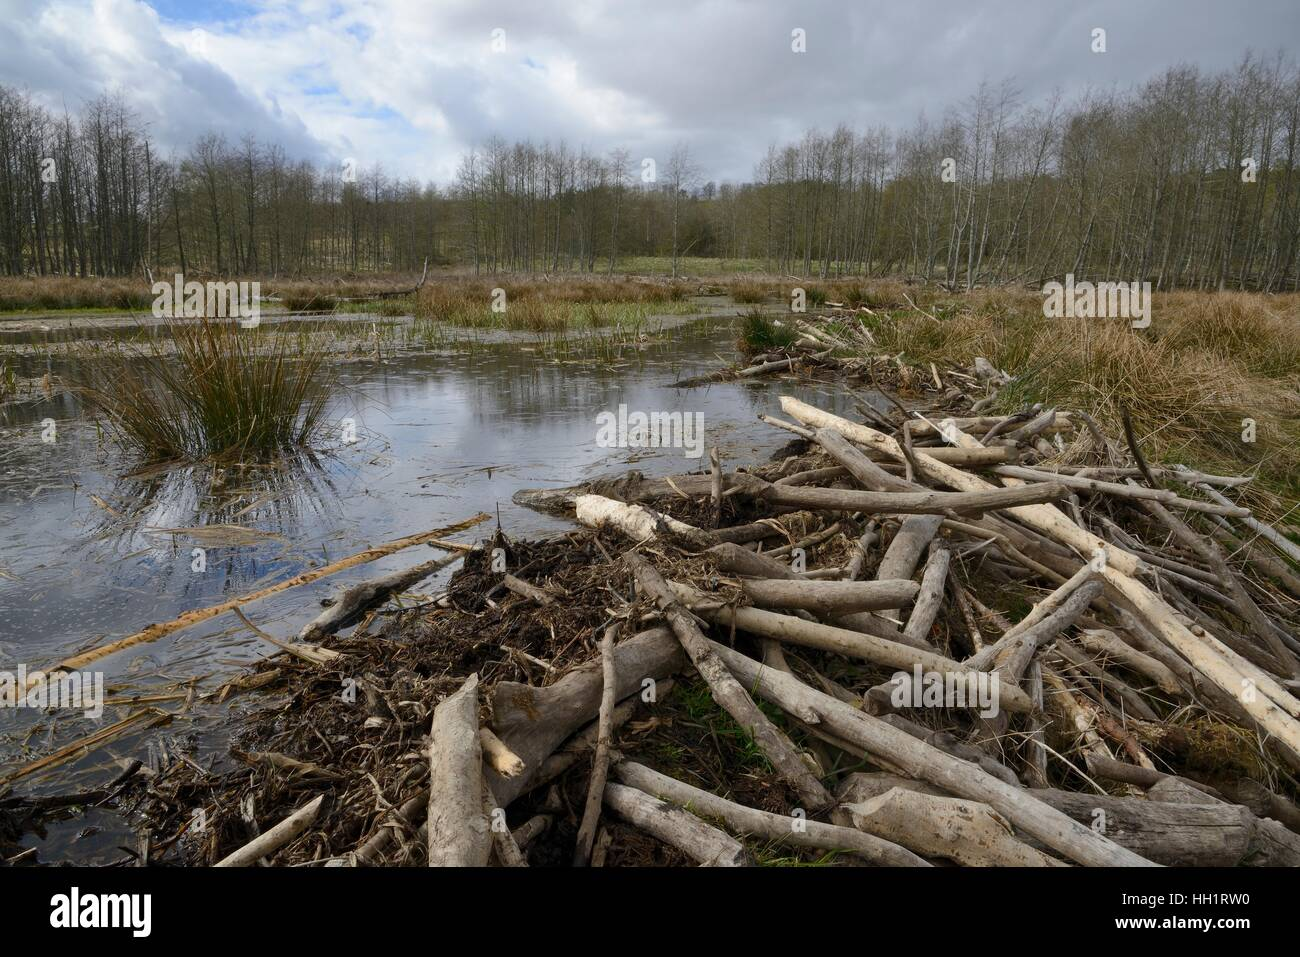 Dam built with cut branches by Eurasian beavers (Castor fiber) to create a large shallow pond in marshland,Tayside, - Stock Image